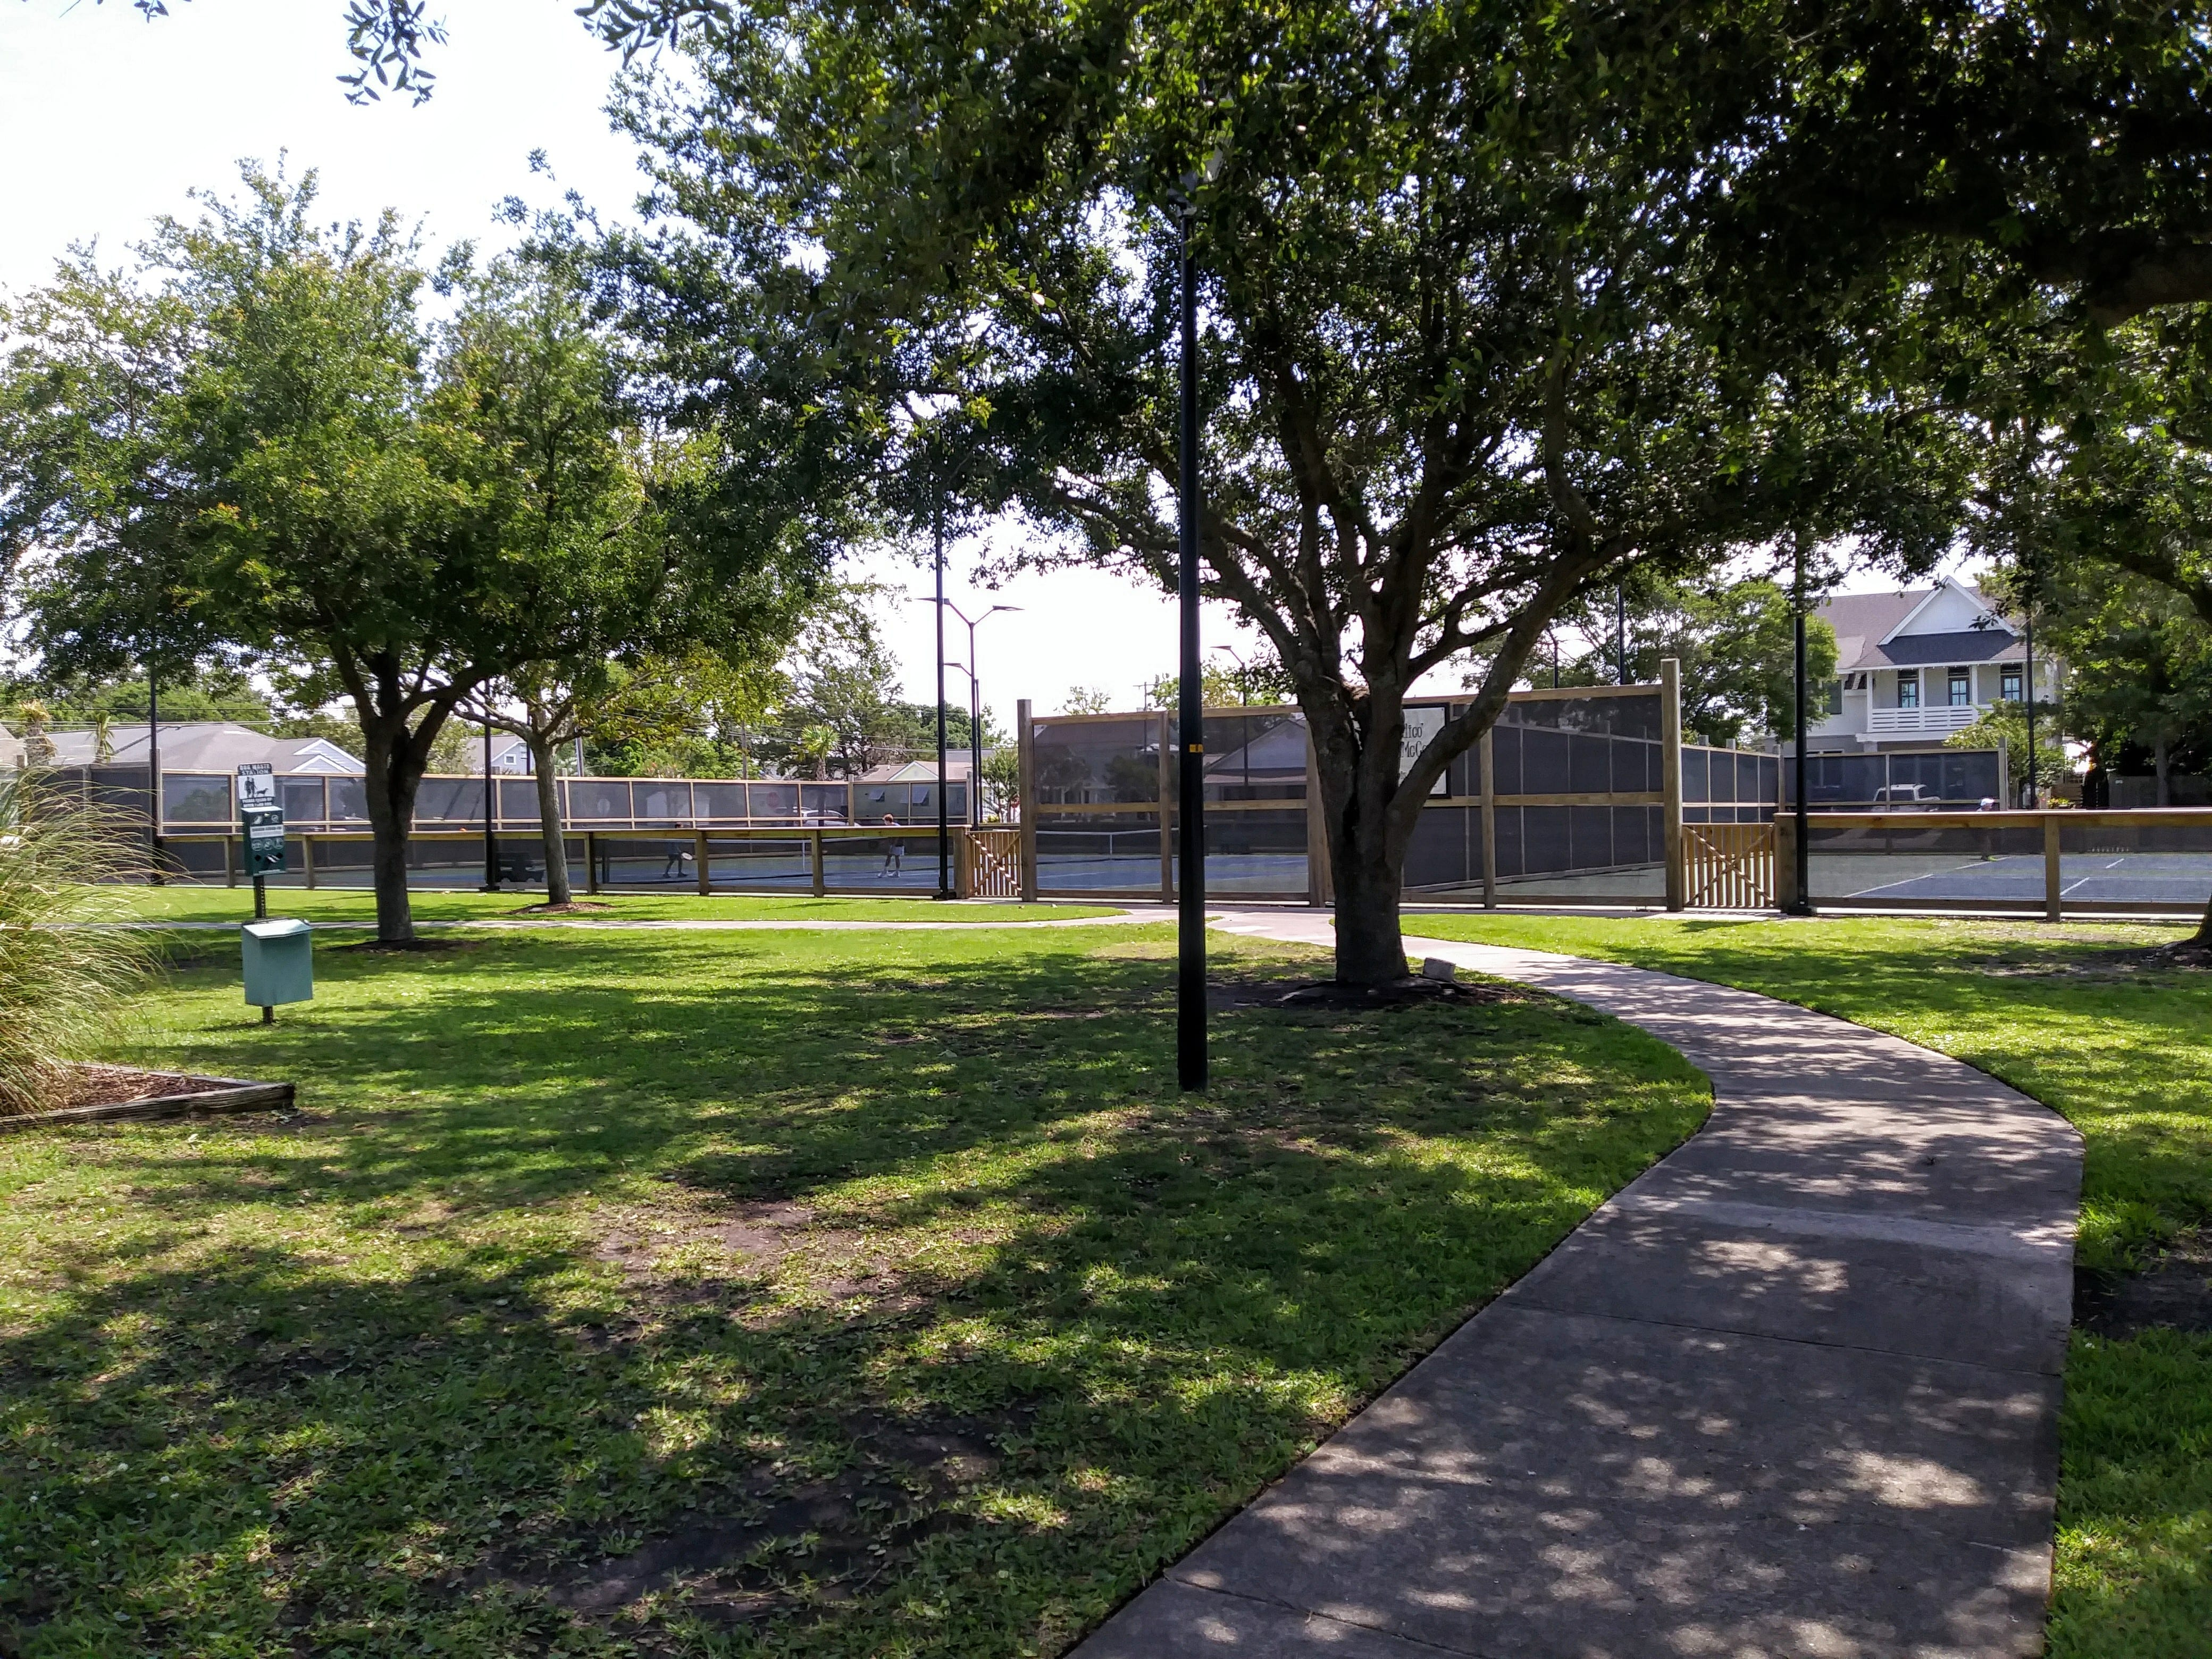 Tennis courts at Swinson Park